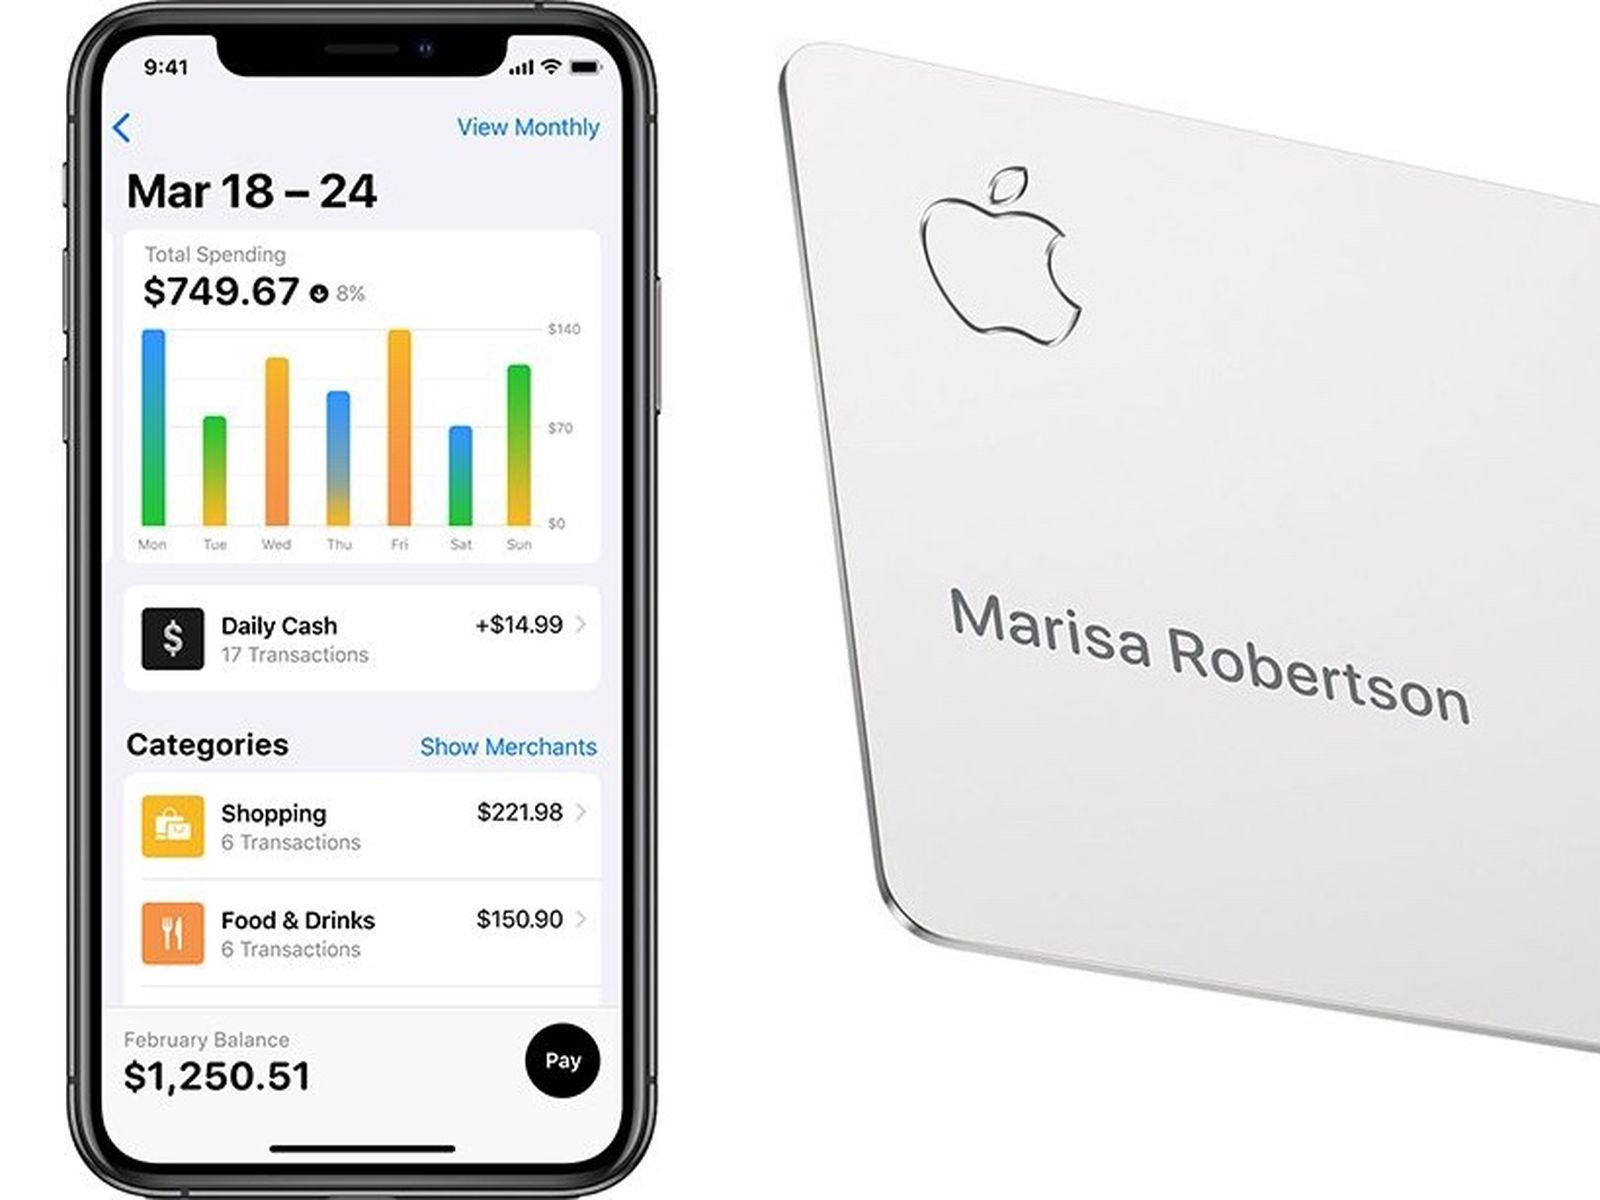 Apple Card Offers Benefits From Mastercard, Base APR Lowered to